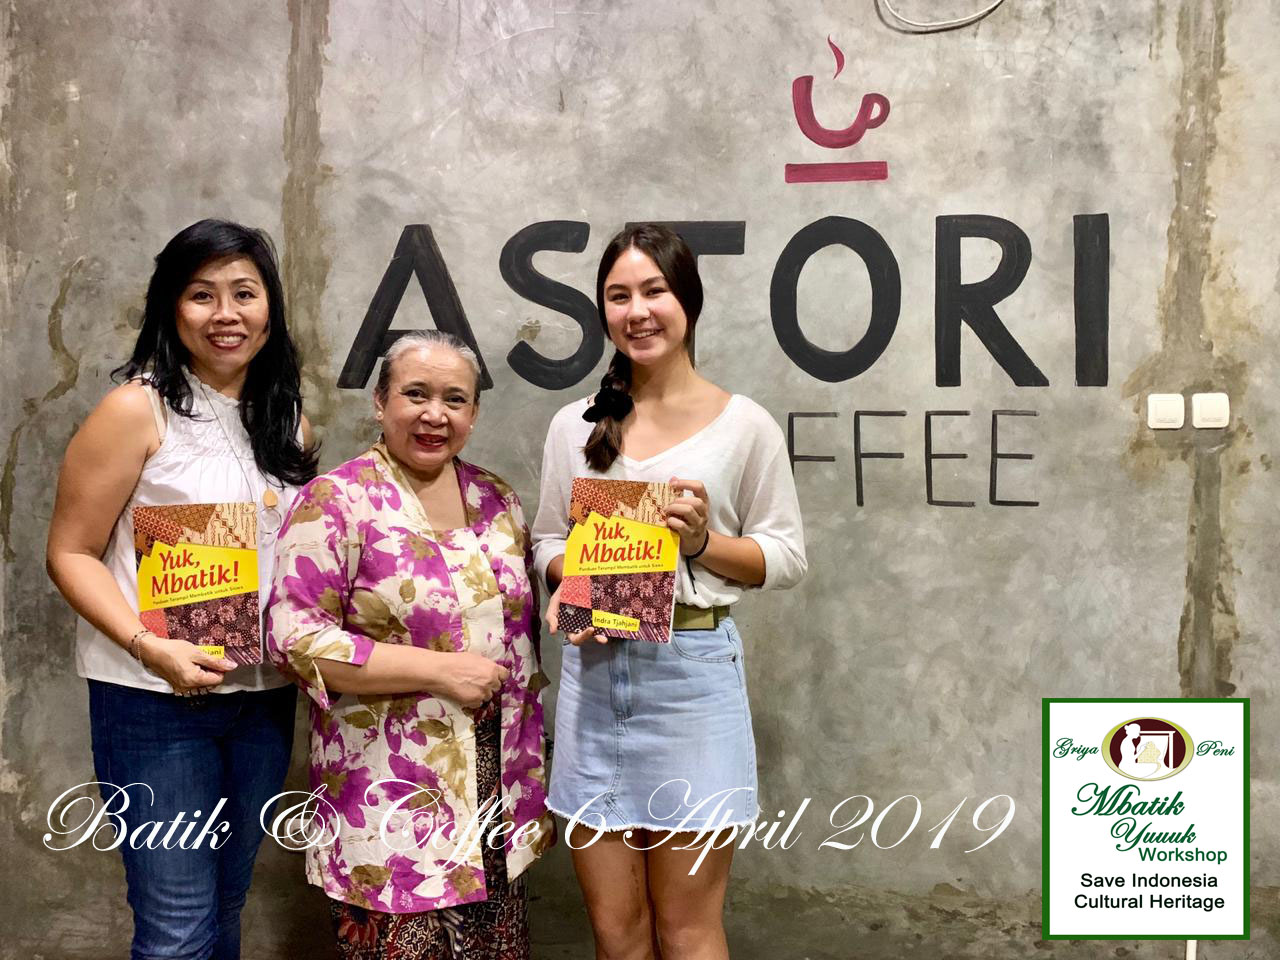 ASTORI COFFEE